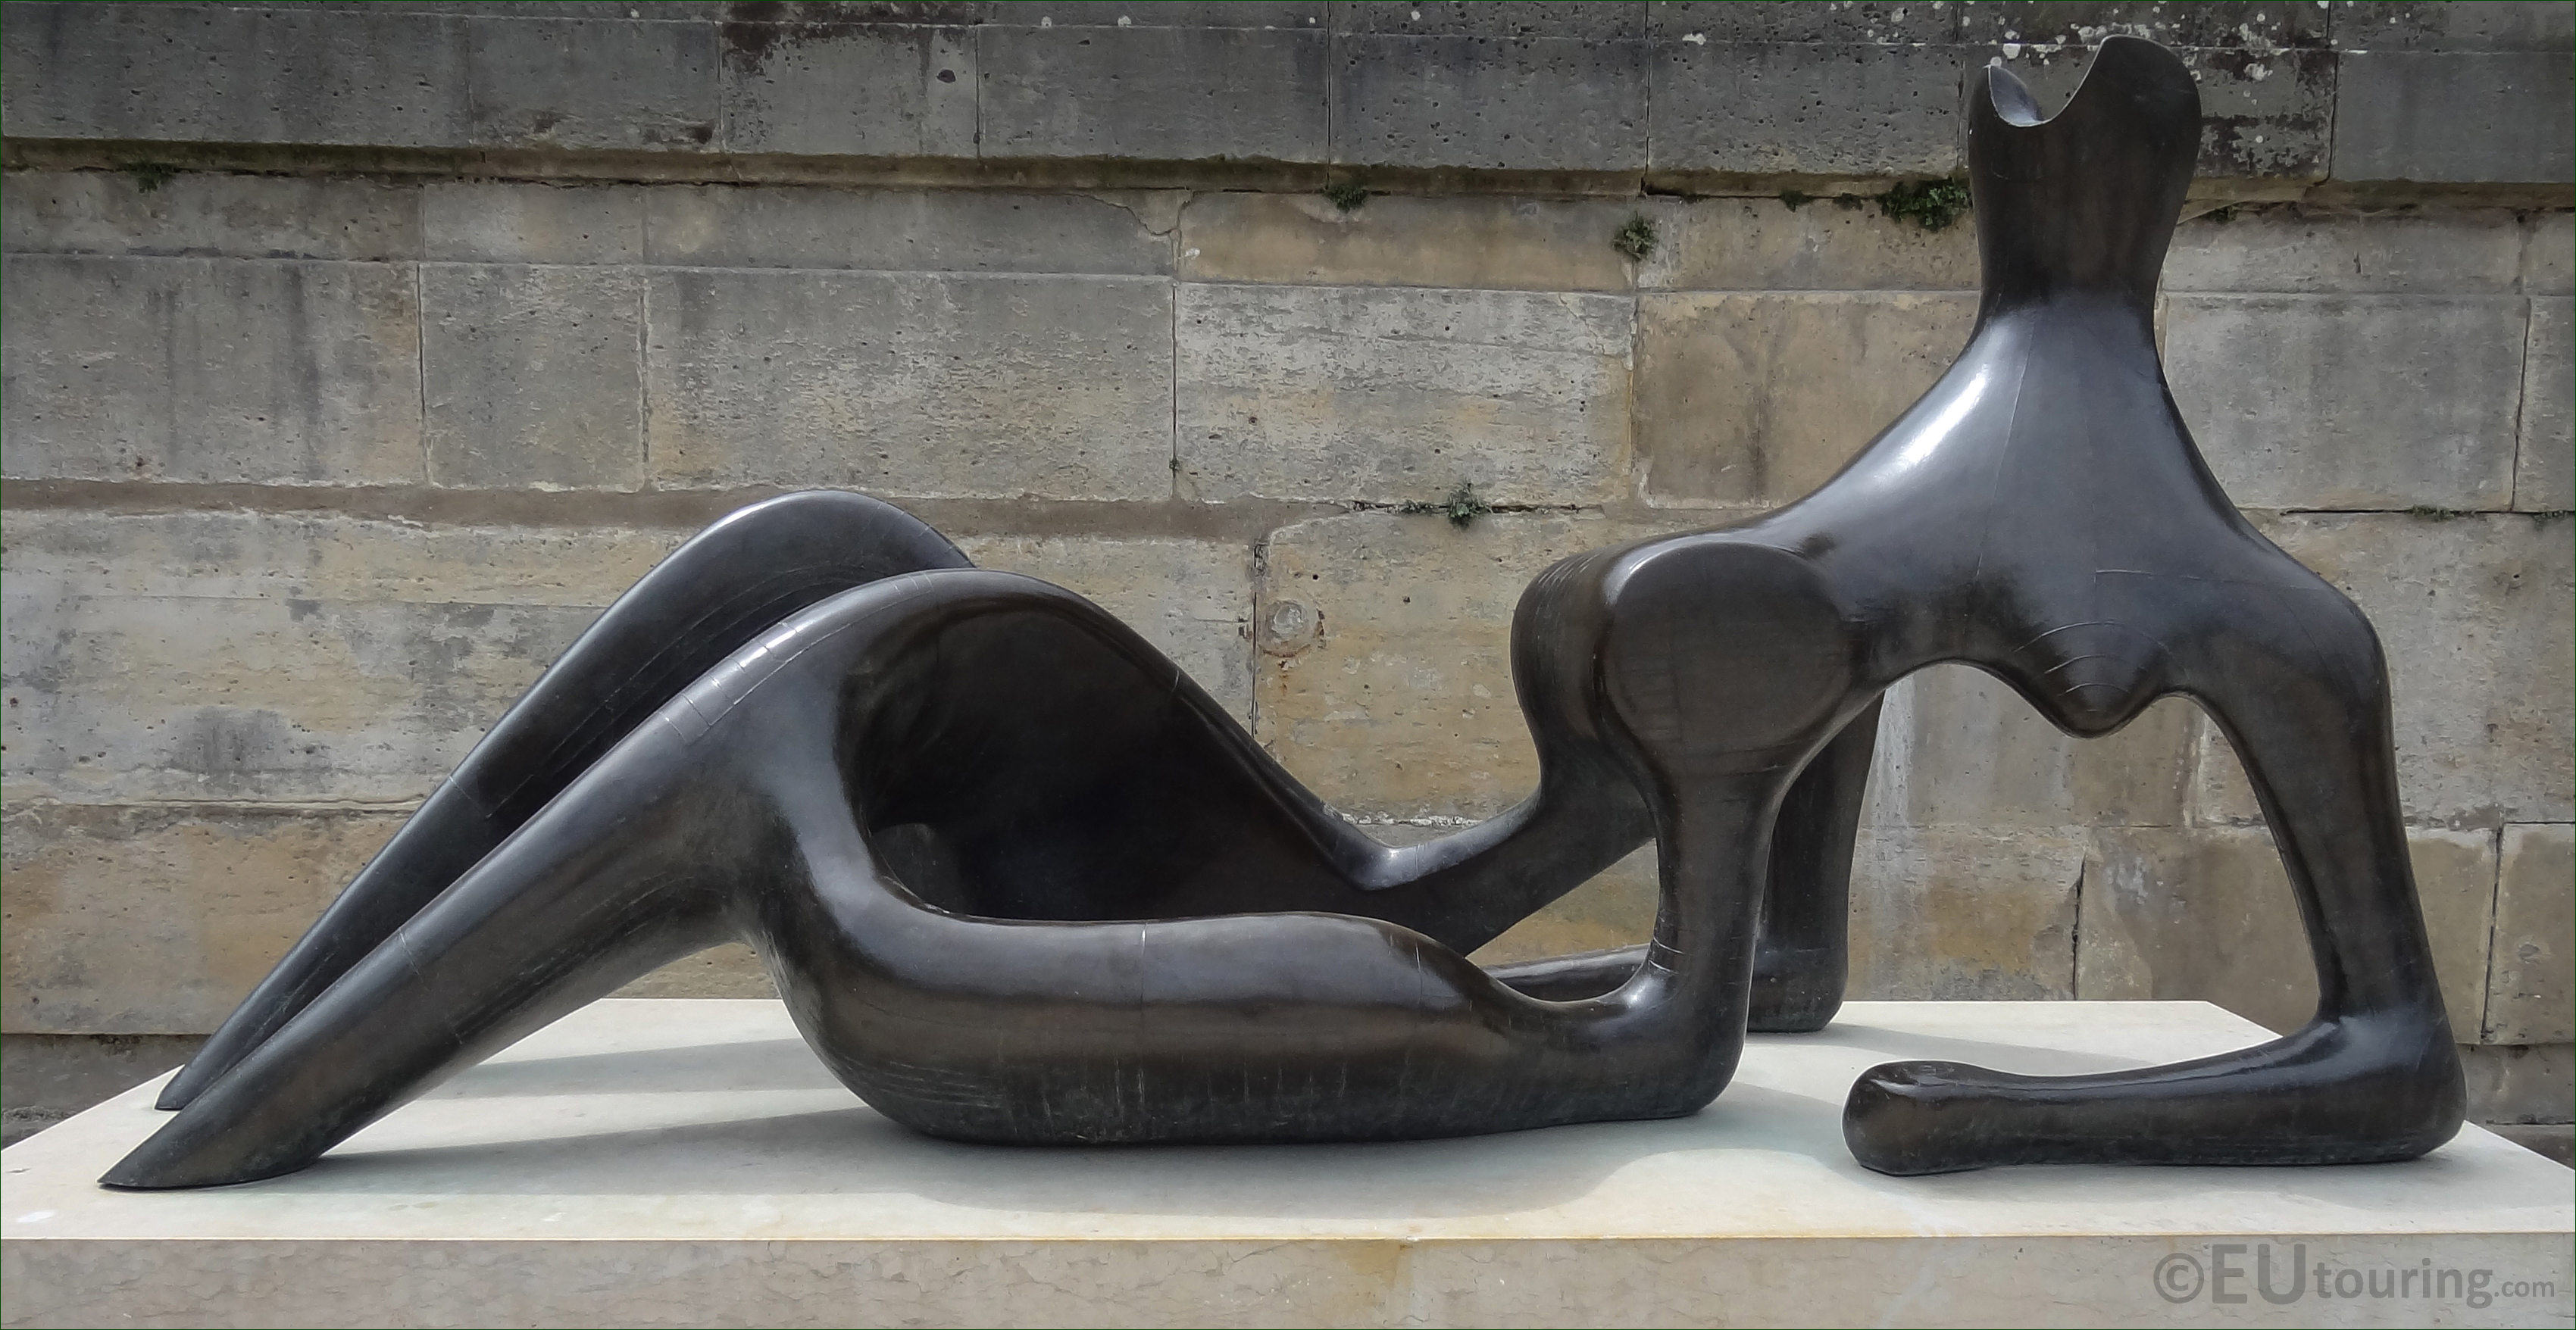 Reclining figure sculpture inside jardin des tuileries - Sculpture jardin des tuileries ...